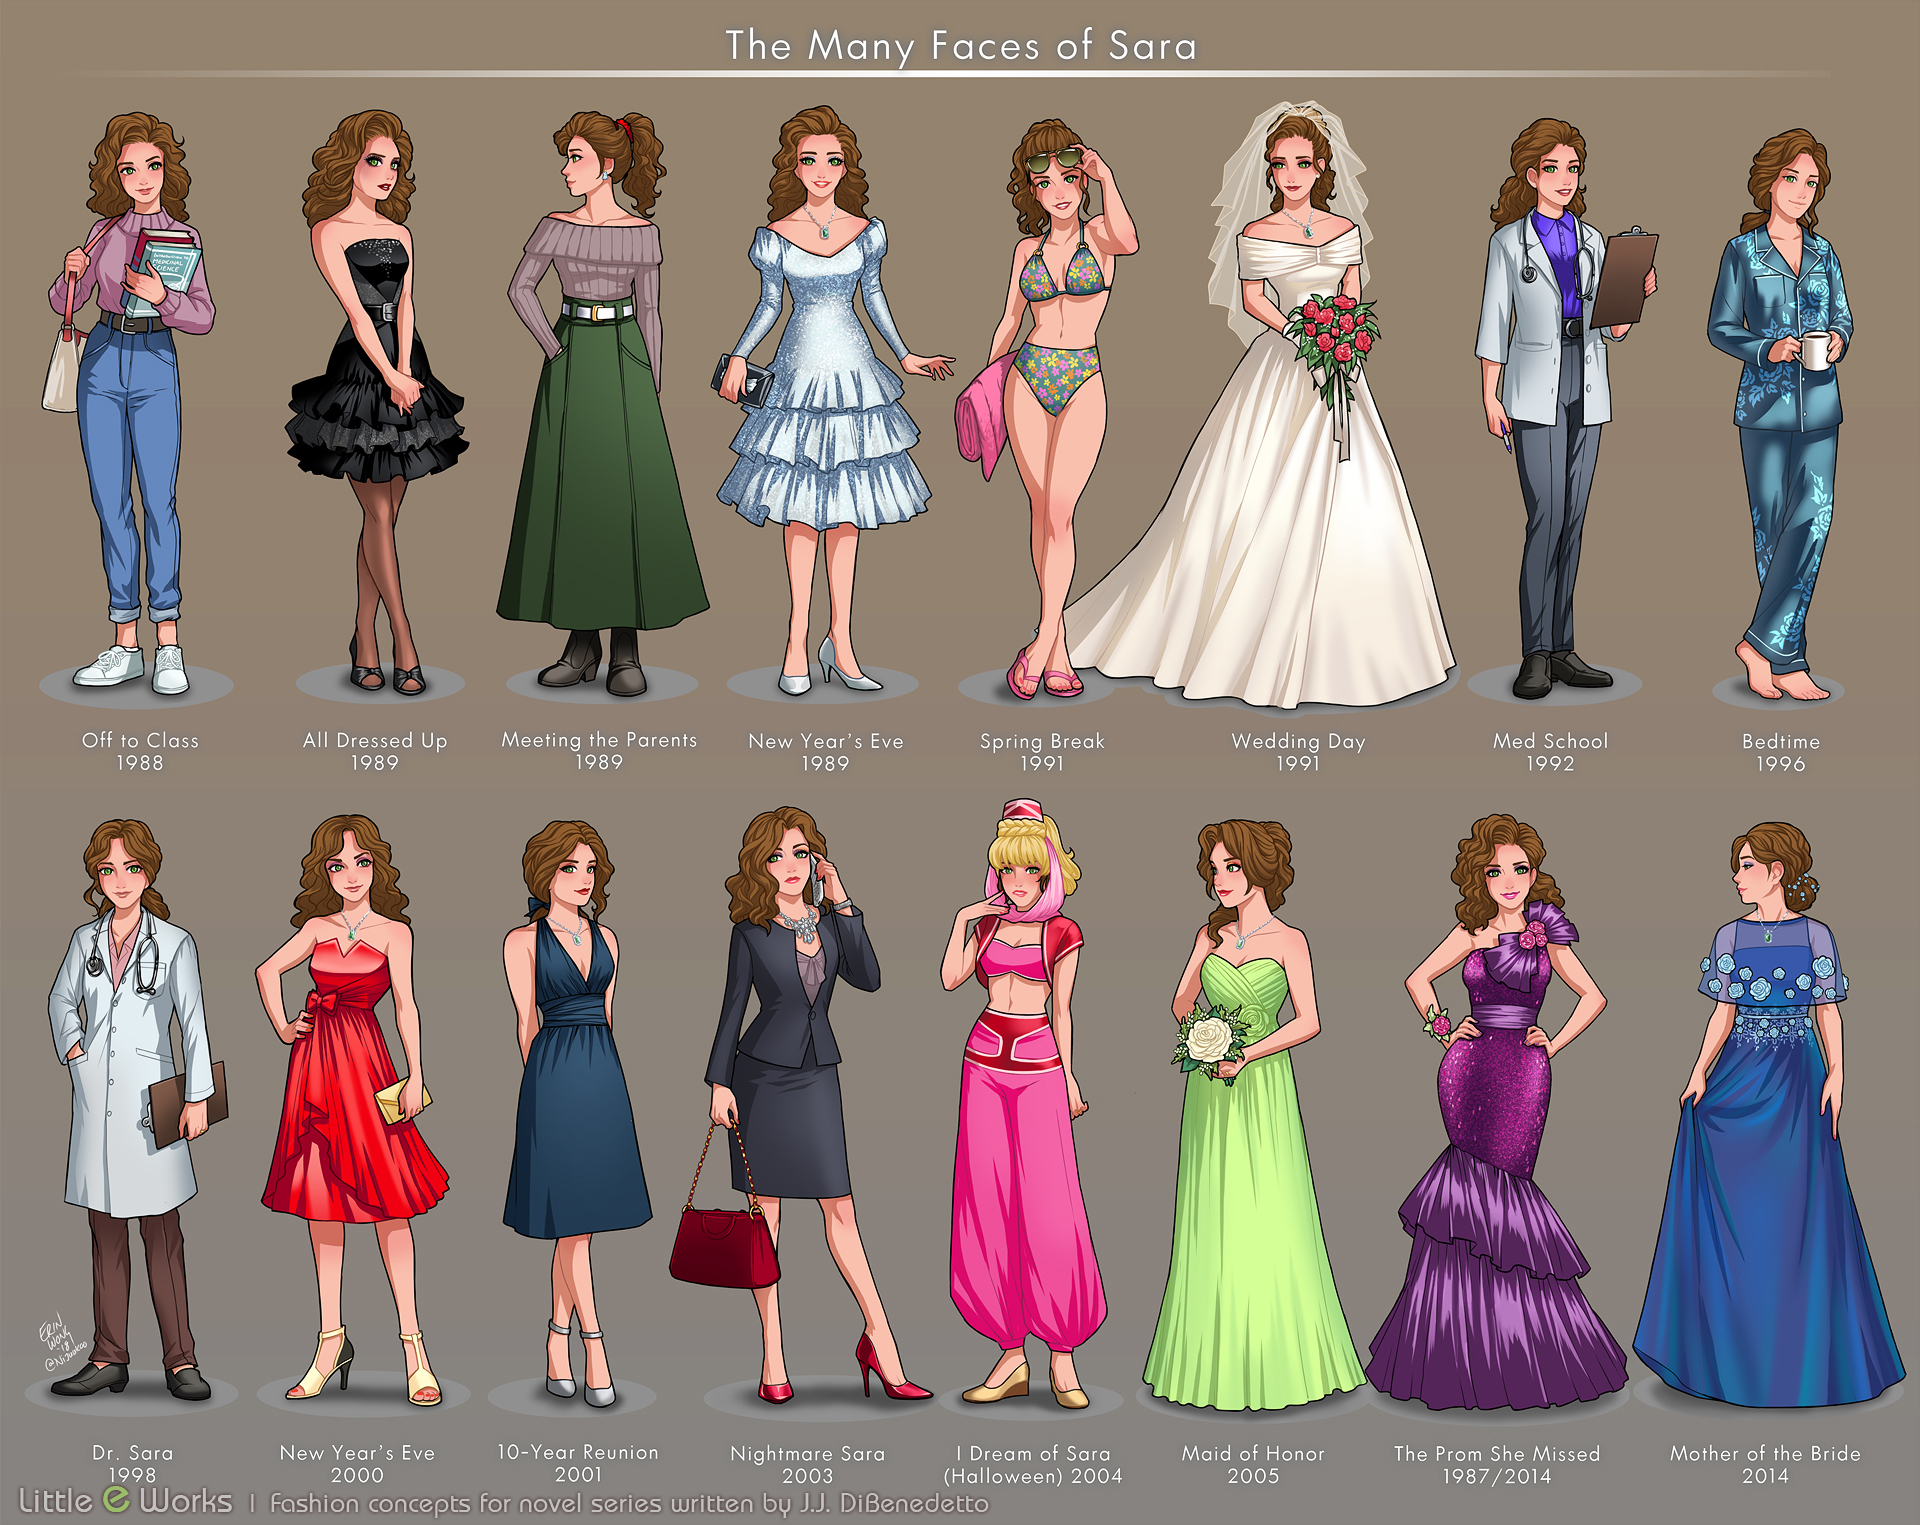 Concepts of iconic outfits for Sara, protagonist of J.J. DiBenedetto's  Dream  novel series.  www.facebook.com/jjdibenedettoauthor